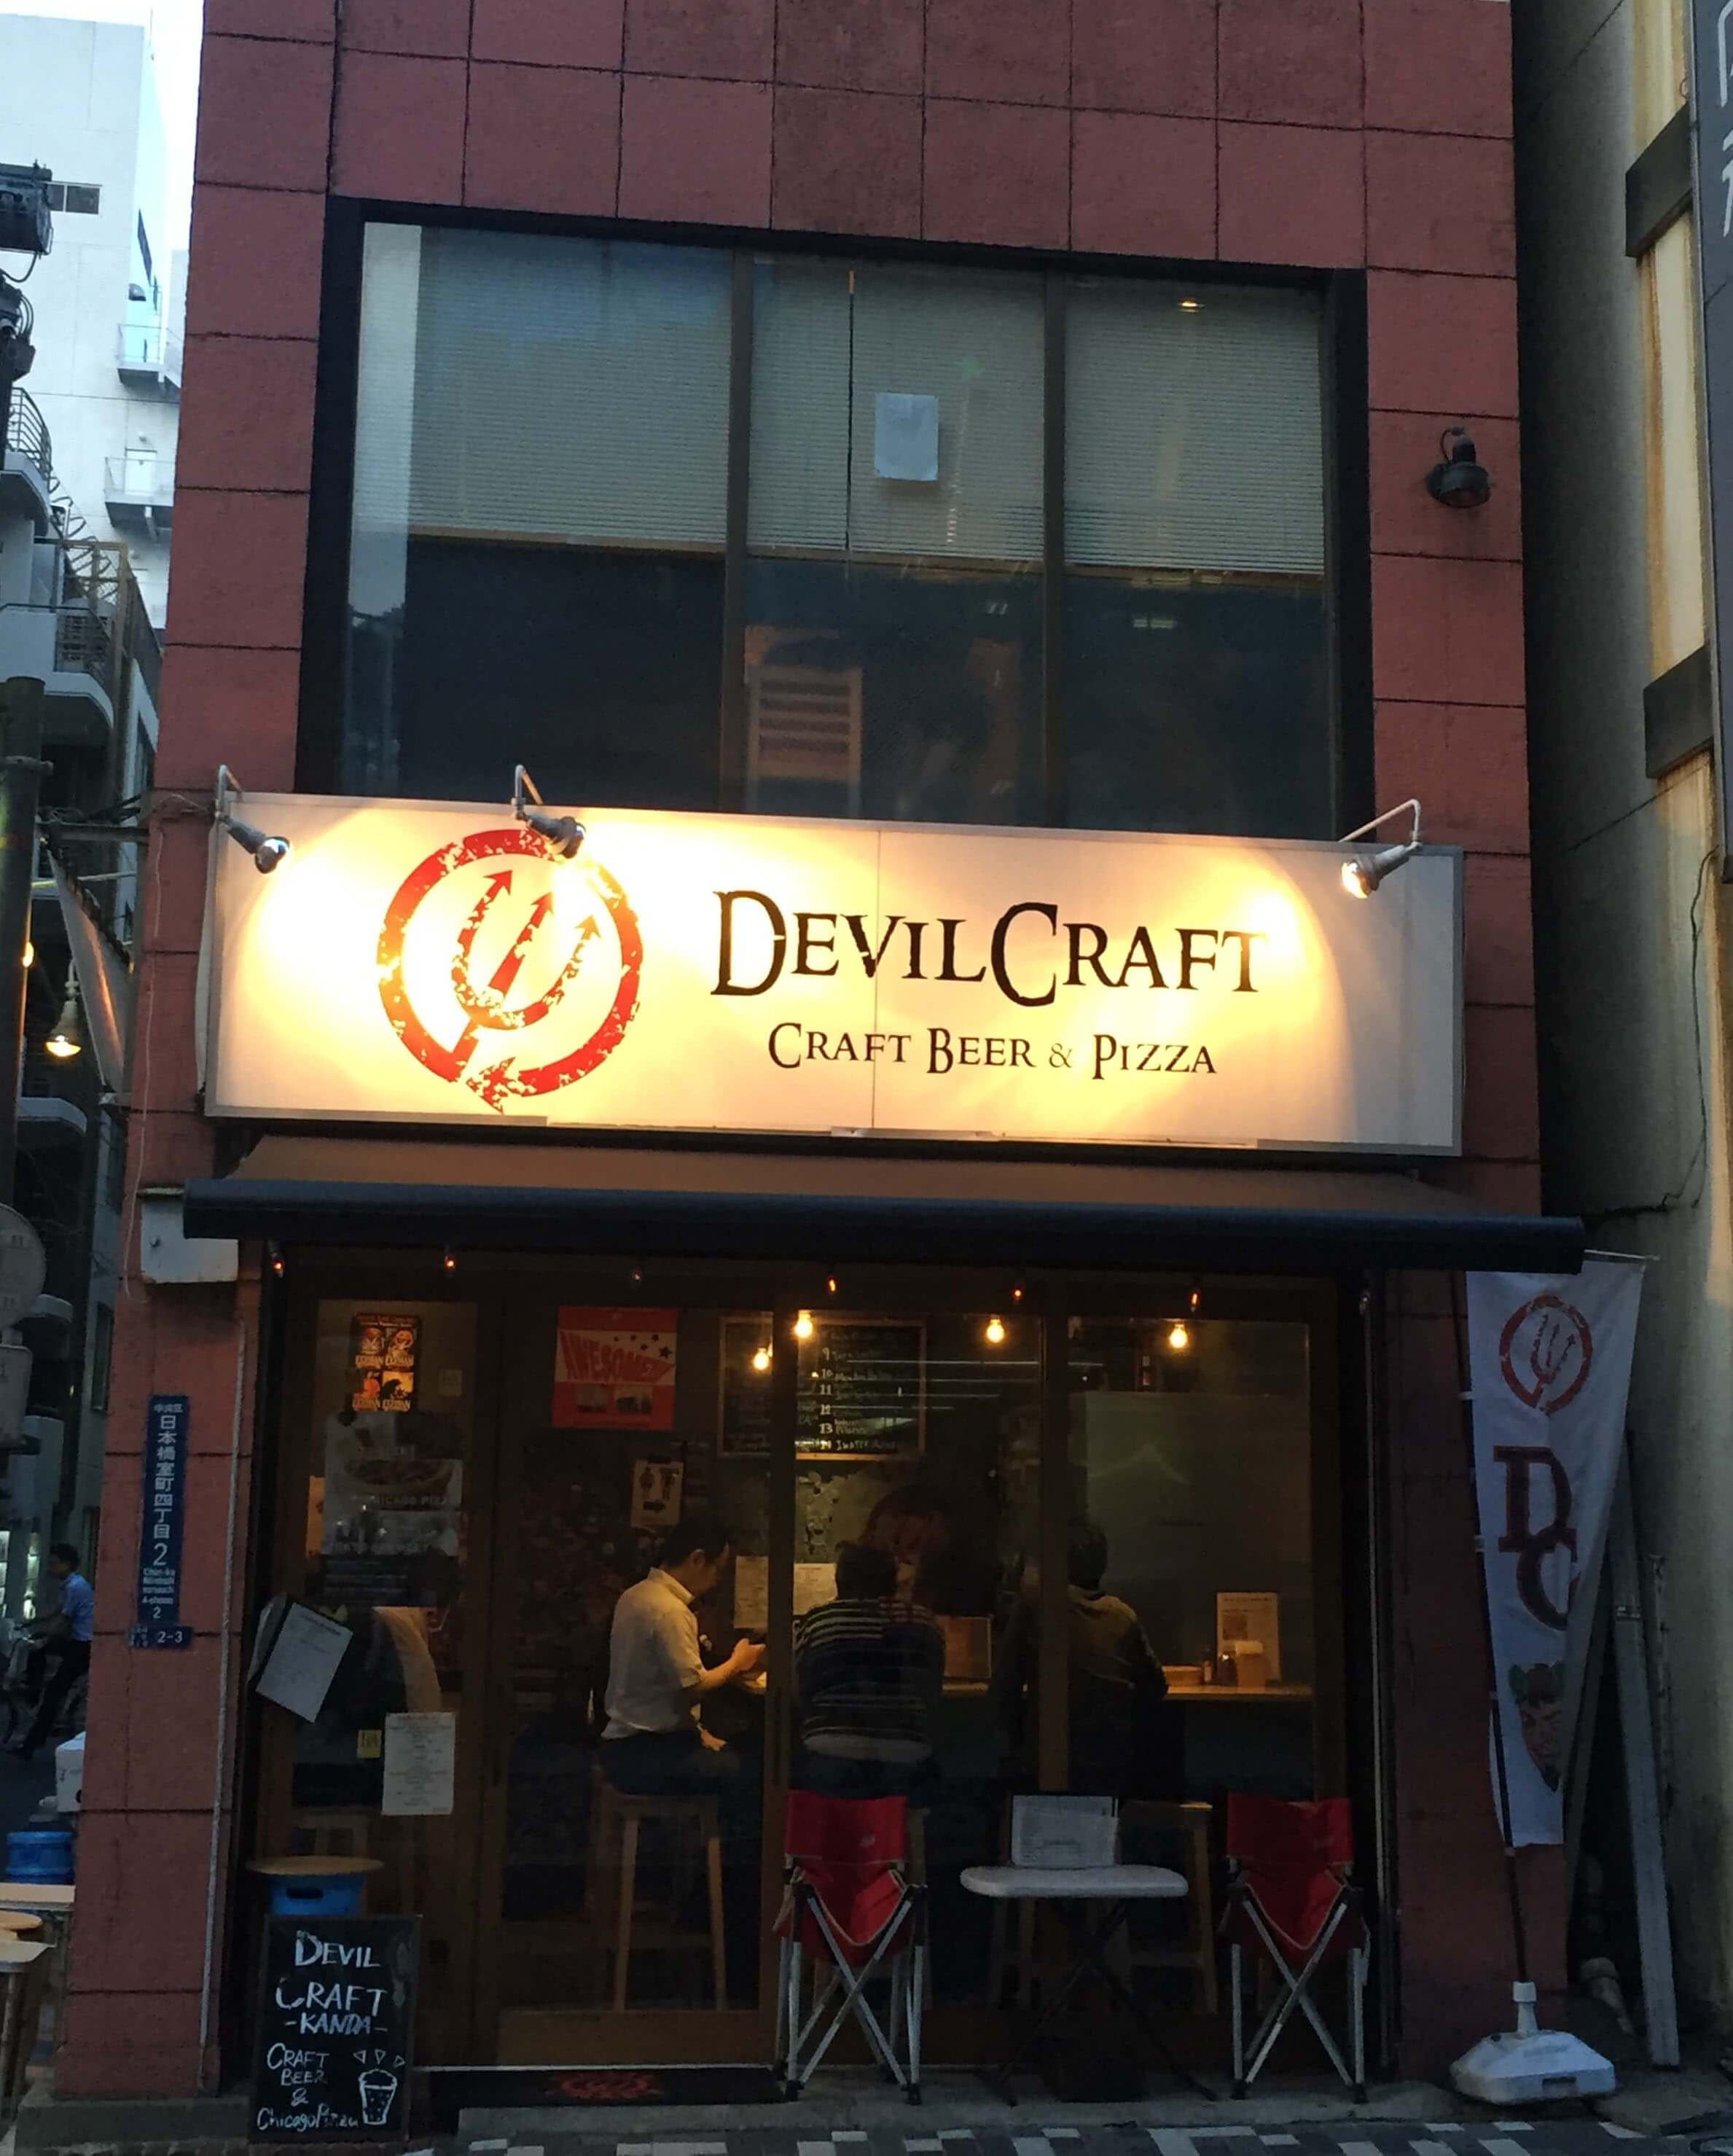 DevilCraft- Time to try some craft beer and pizza